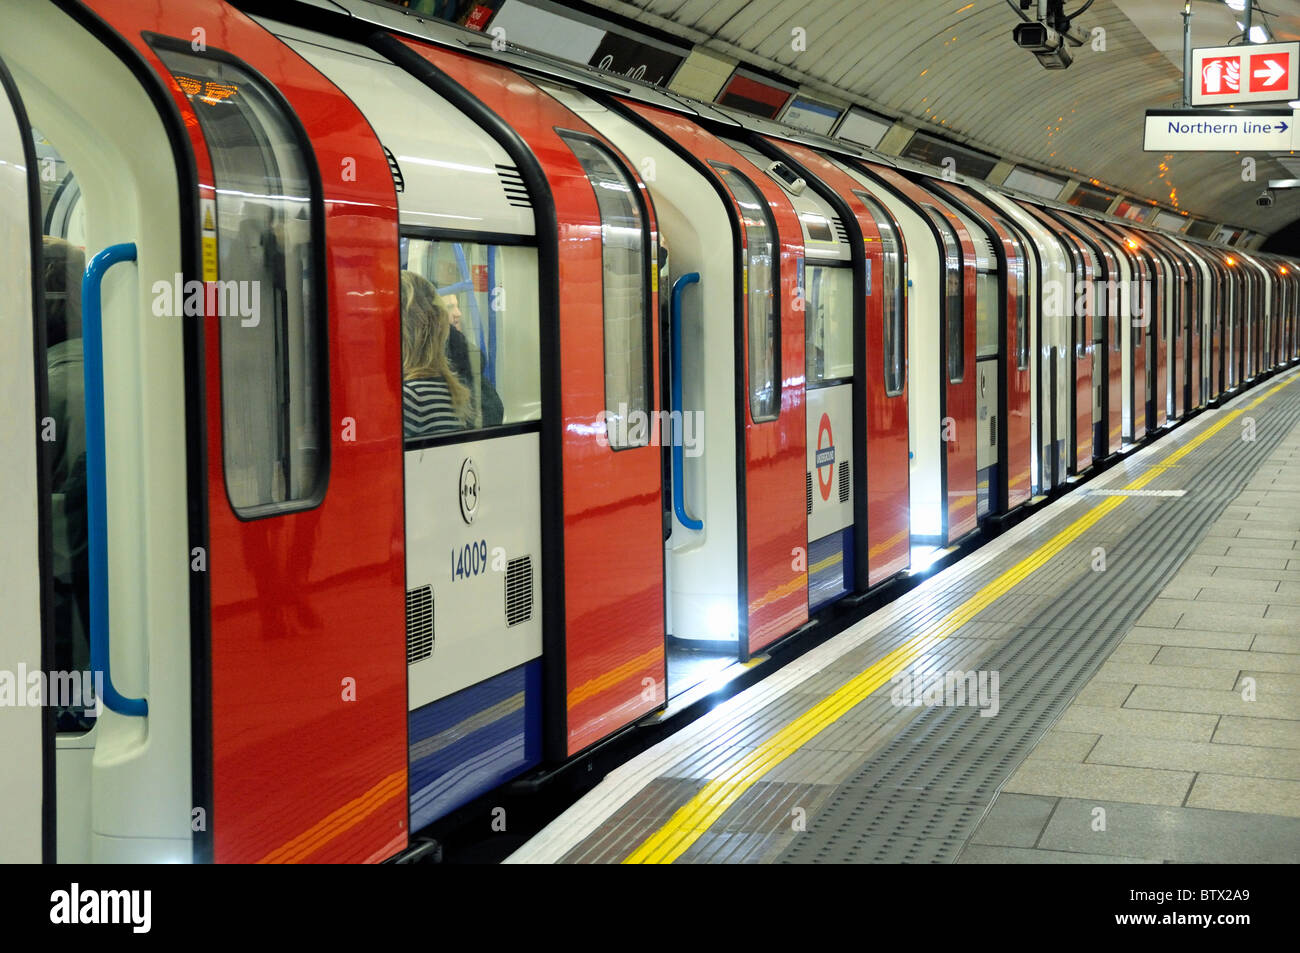 Southbound Victoria line train with doors open Warren Street Station London England UK - Stock Image